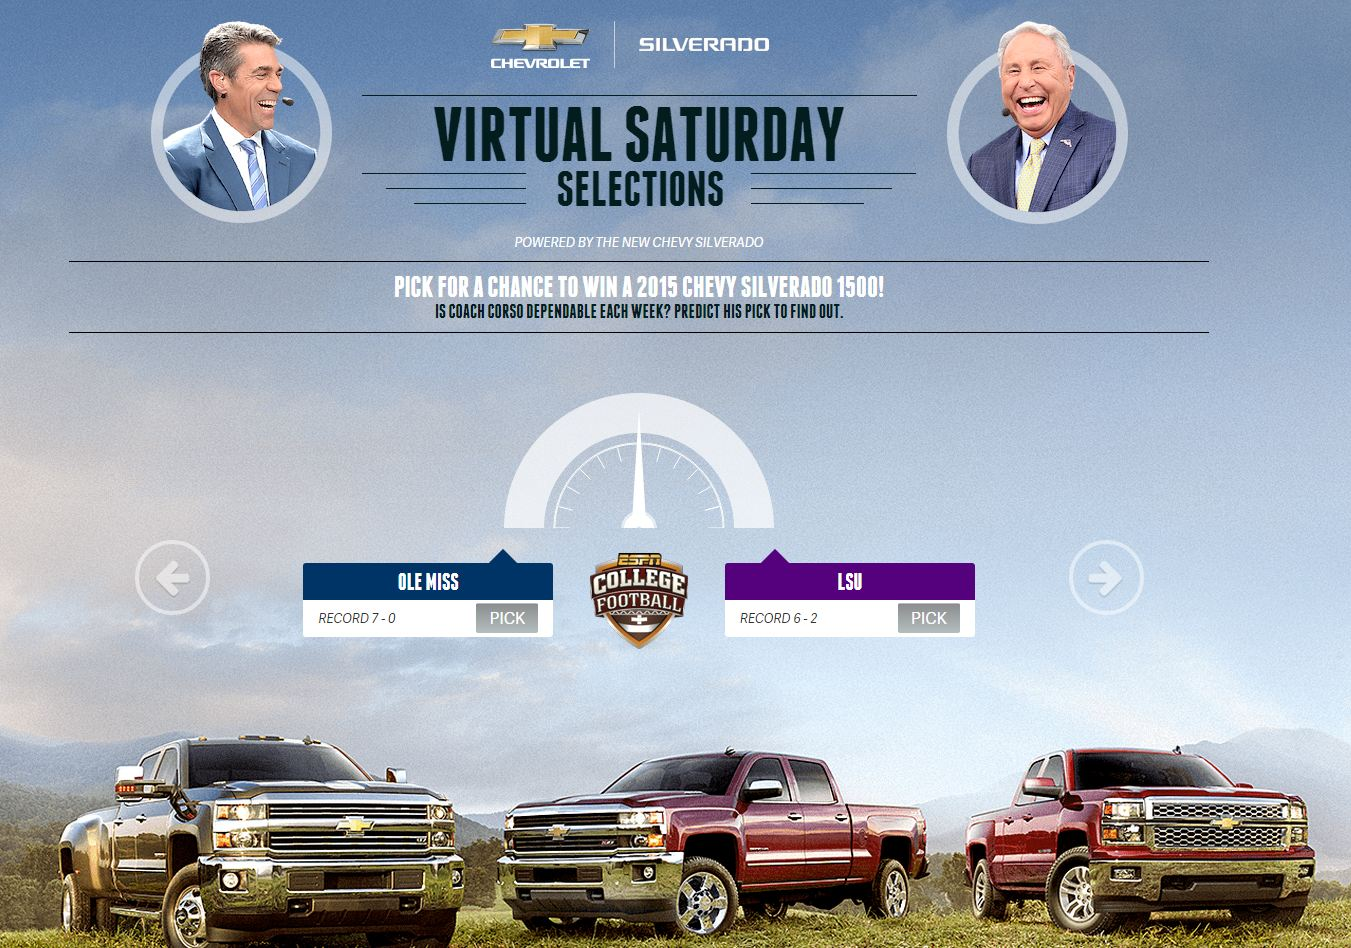 Win a Silverado via ESPN's Chevy Virtual Saturday Selections